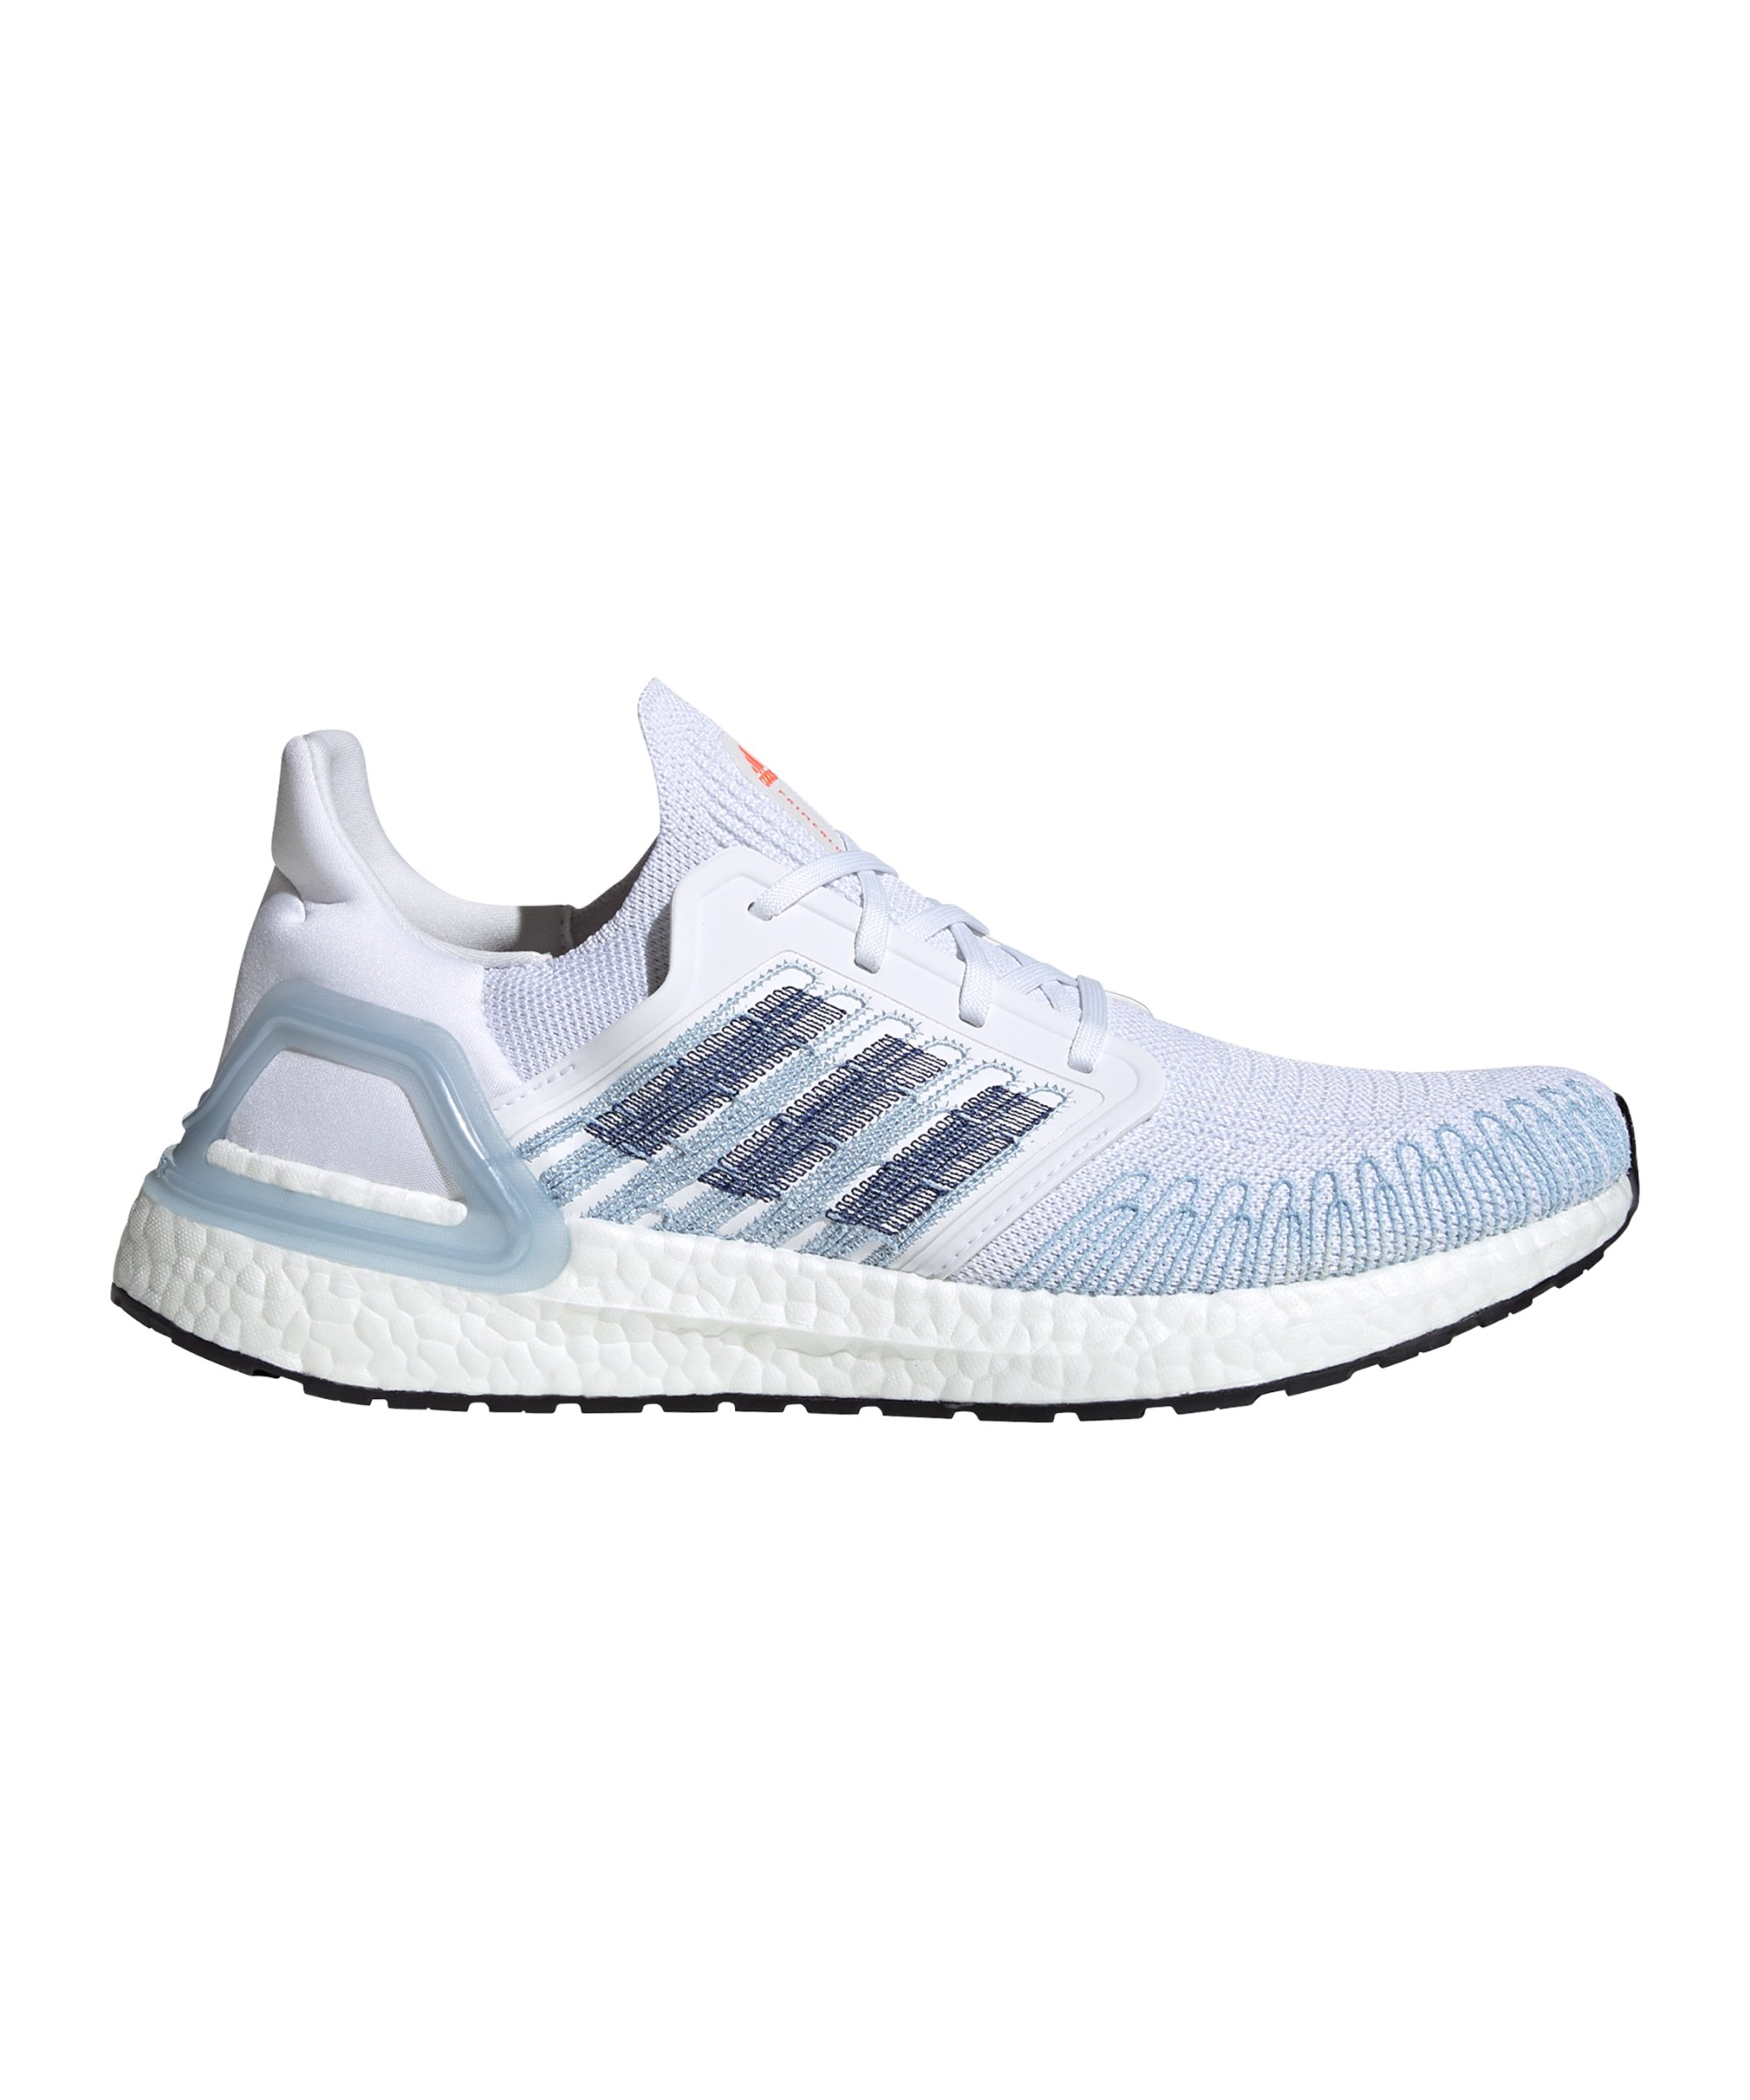 adidas Ultra Boost 20 Running Weiss Blau - weiss